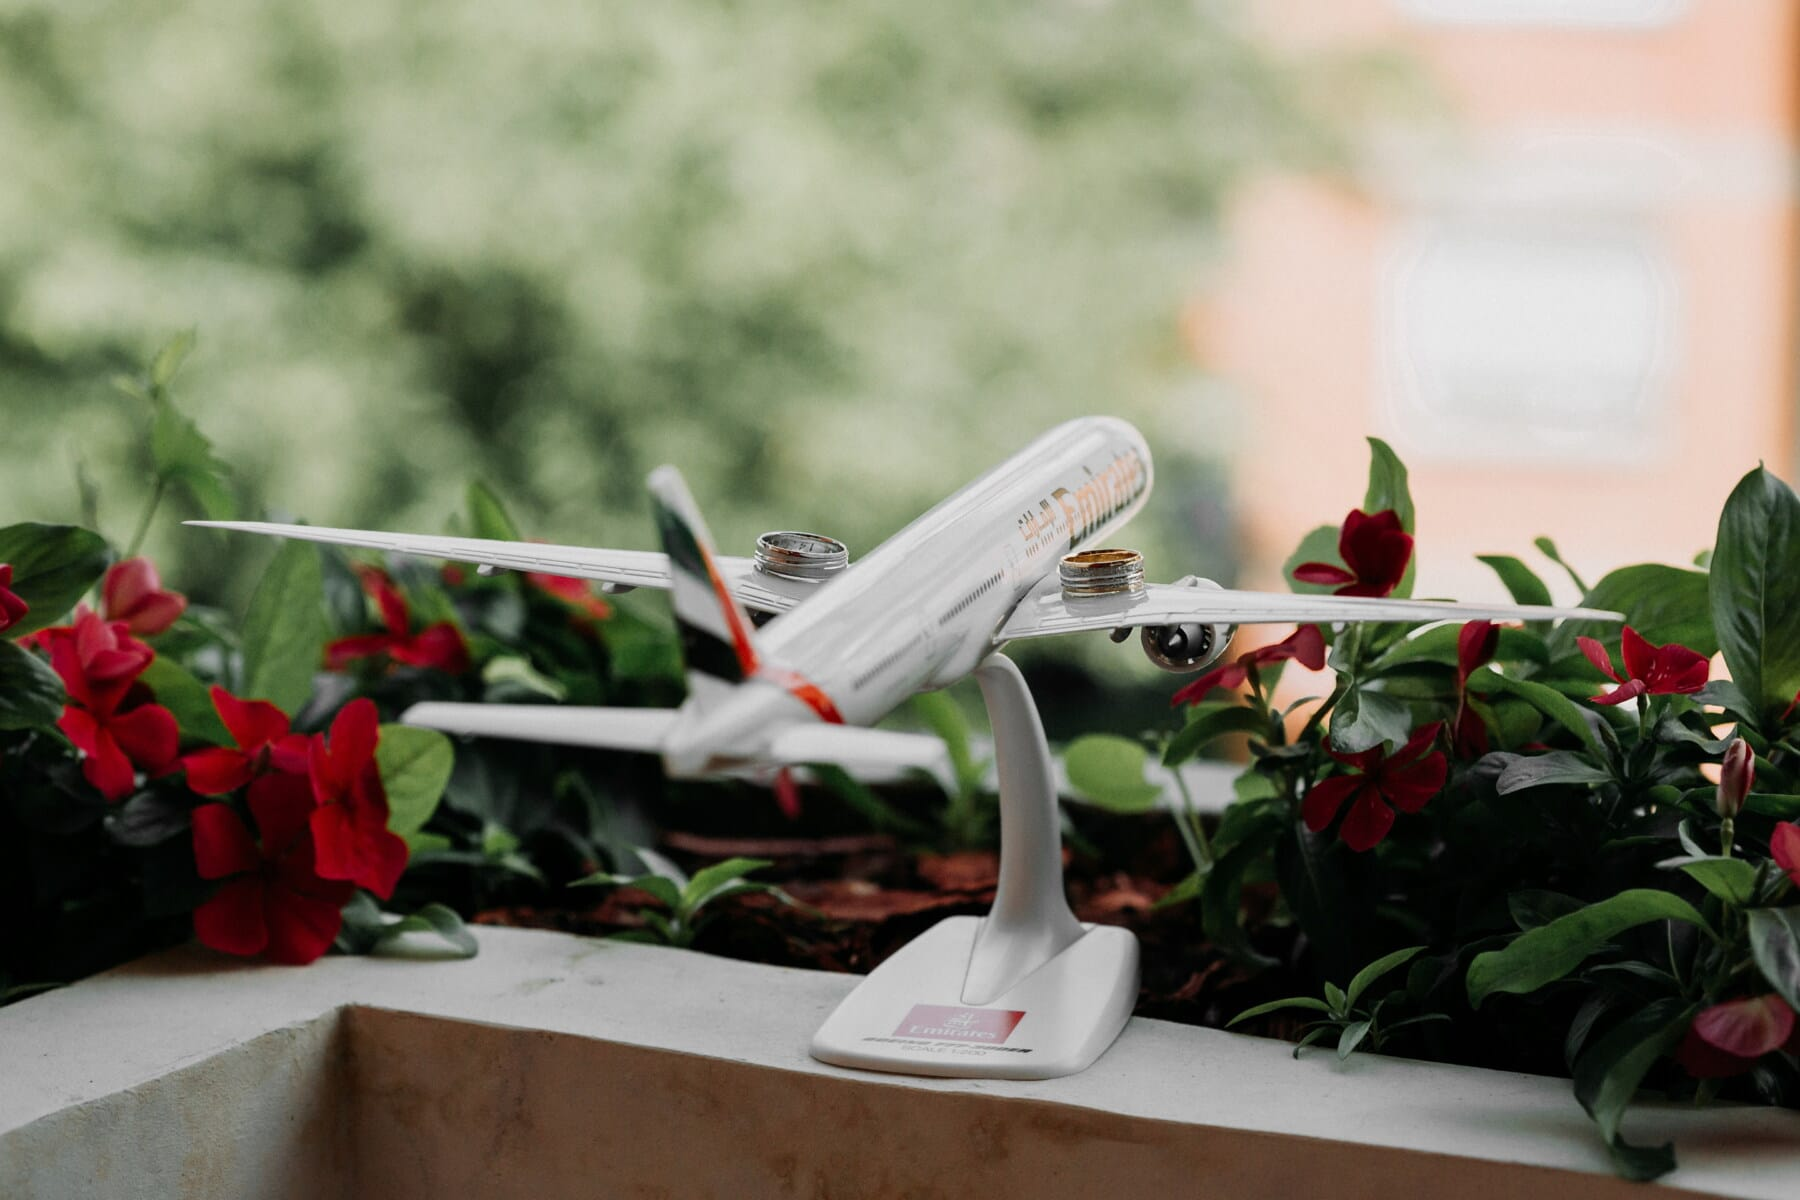 aeroplano, miniature, aircraft, toy, wedding ring, rings, flowerpot, balcony, flower garden, flower